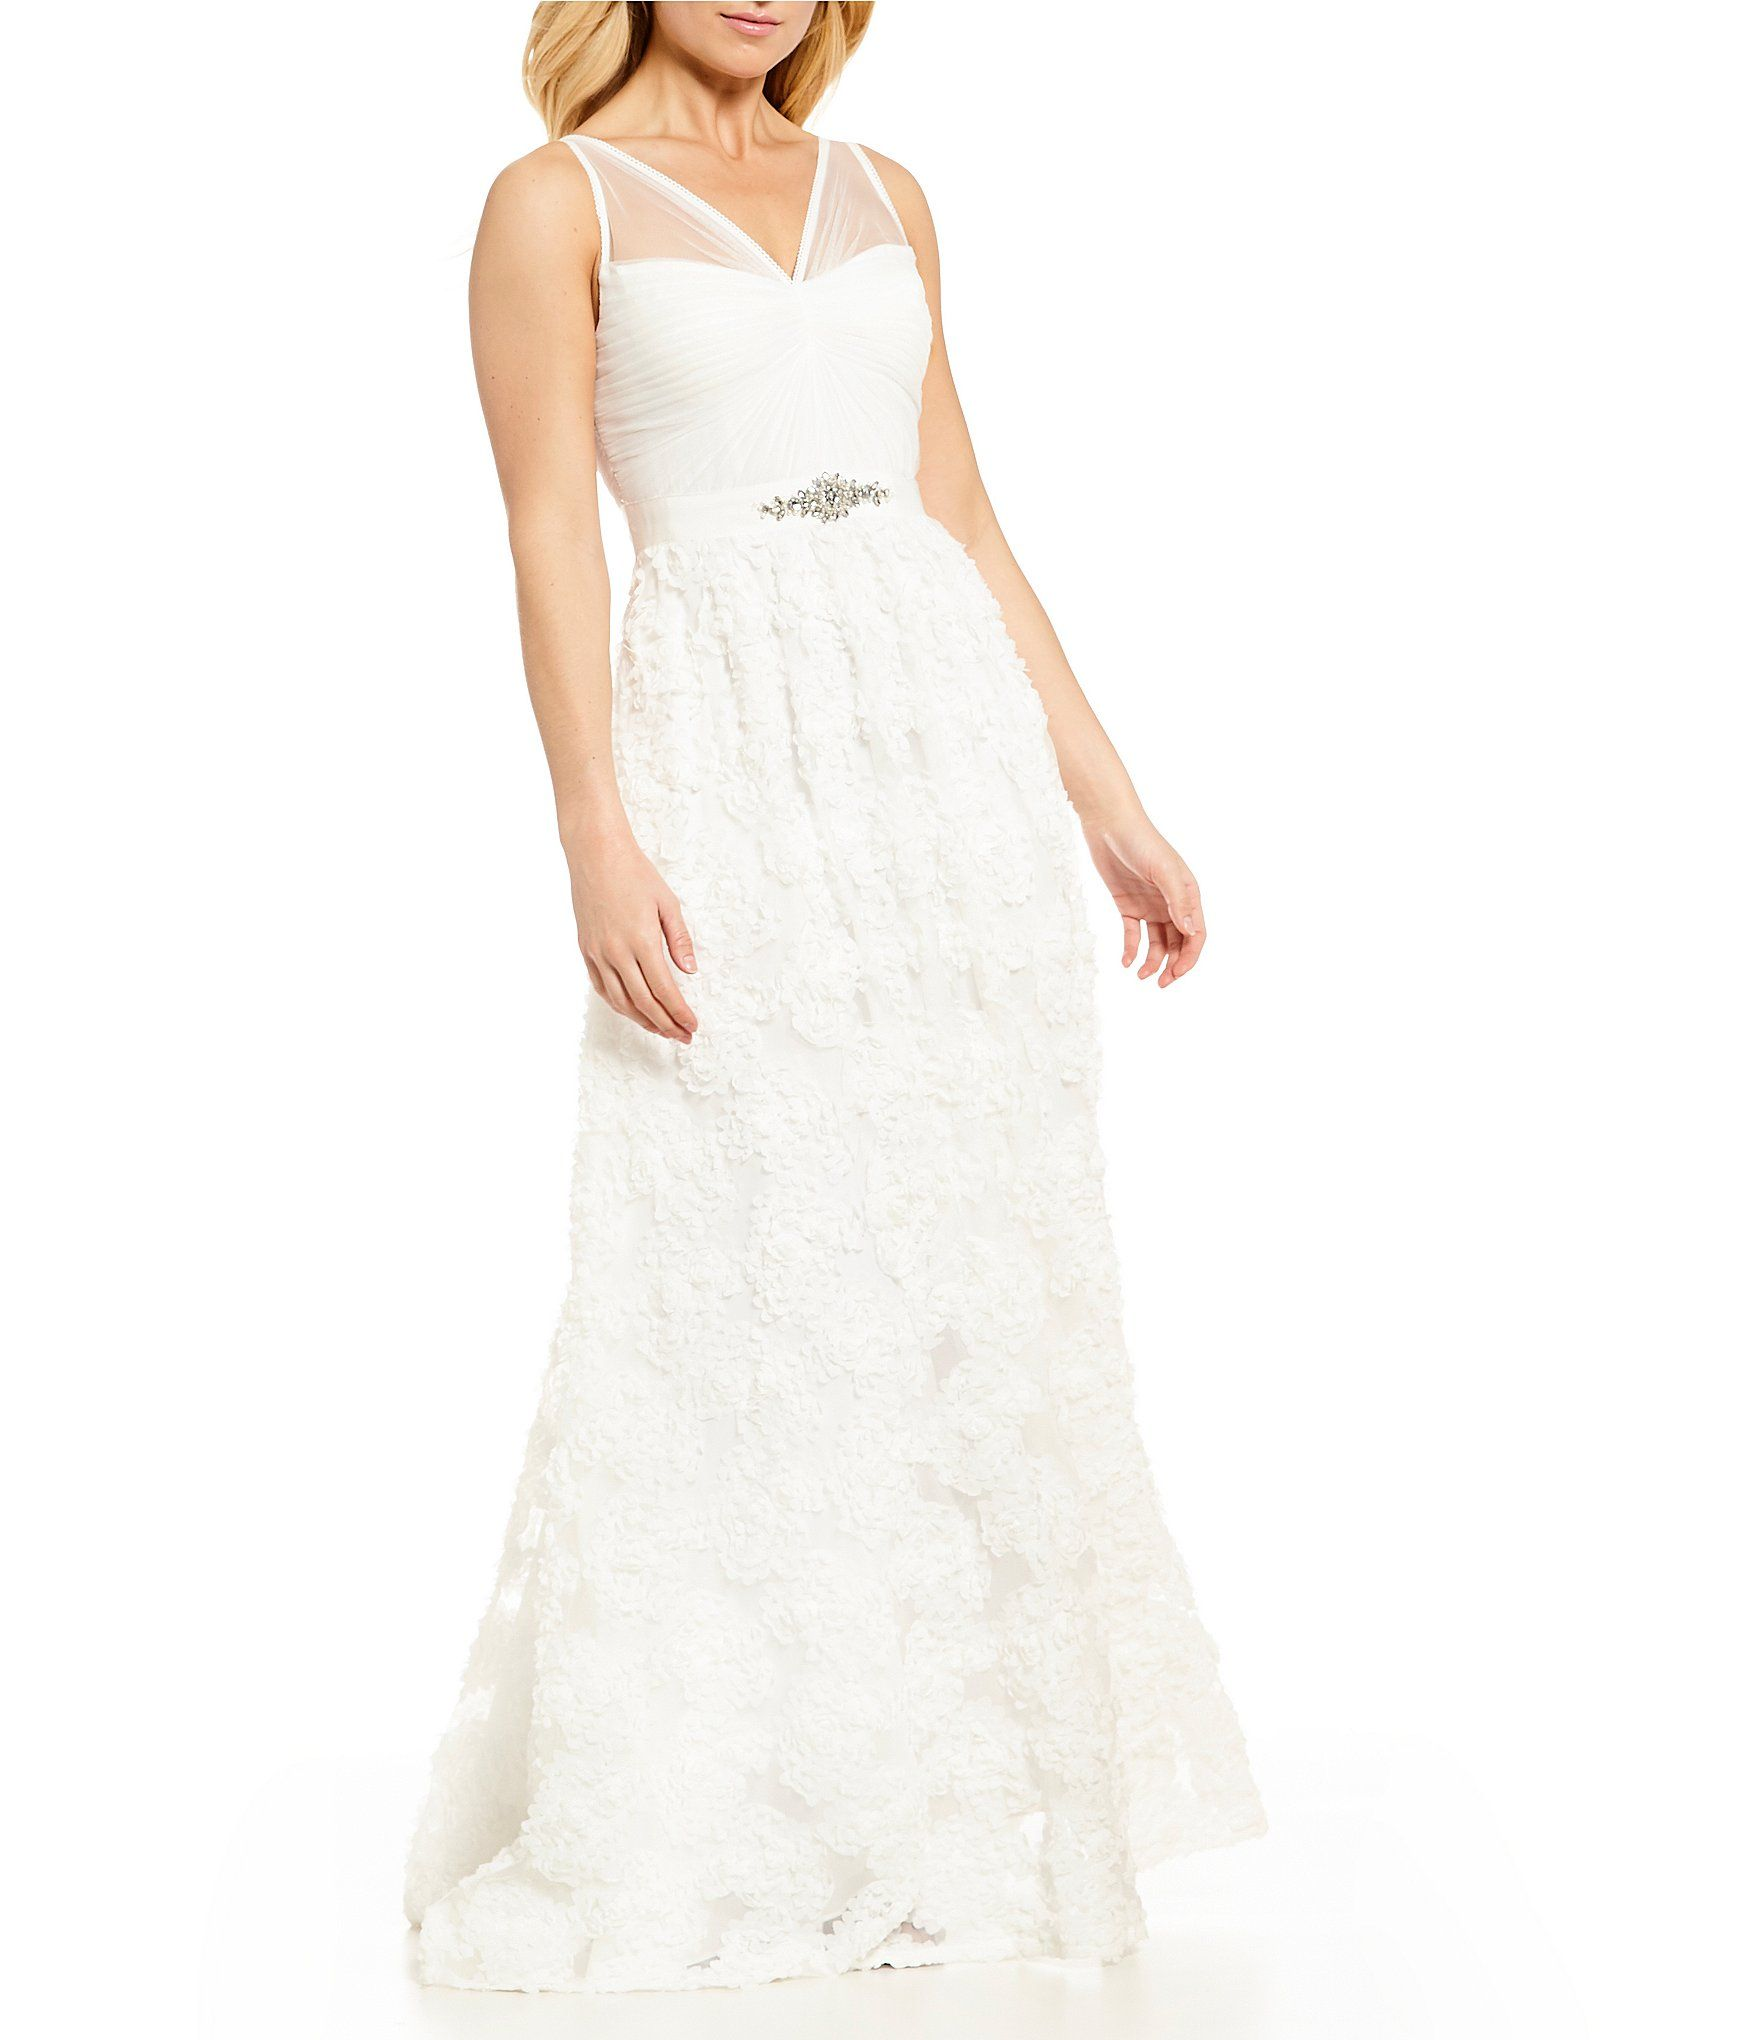 Adrianna Papell Tulle Rosette Gown Dillards Womens Wedding Dresses Macys Wedding Dresses Tulle Wedding Dress